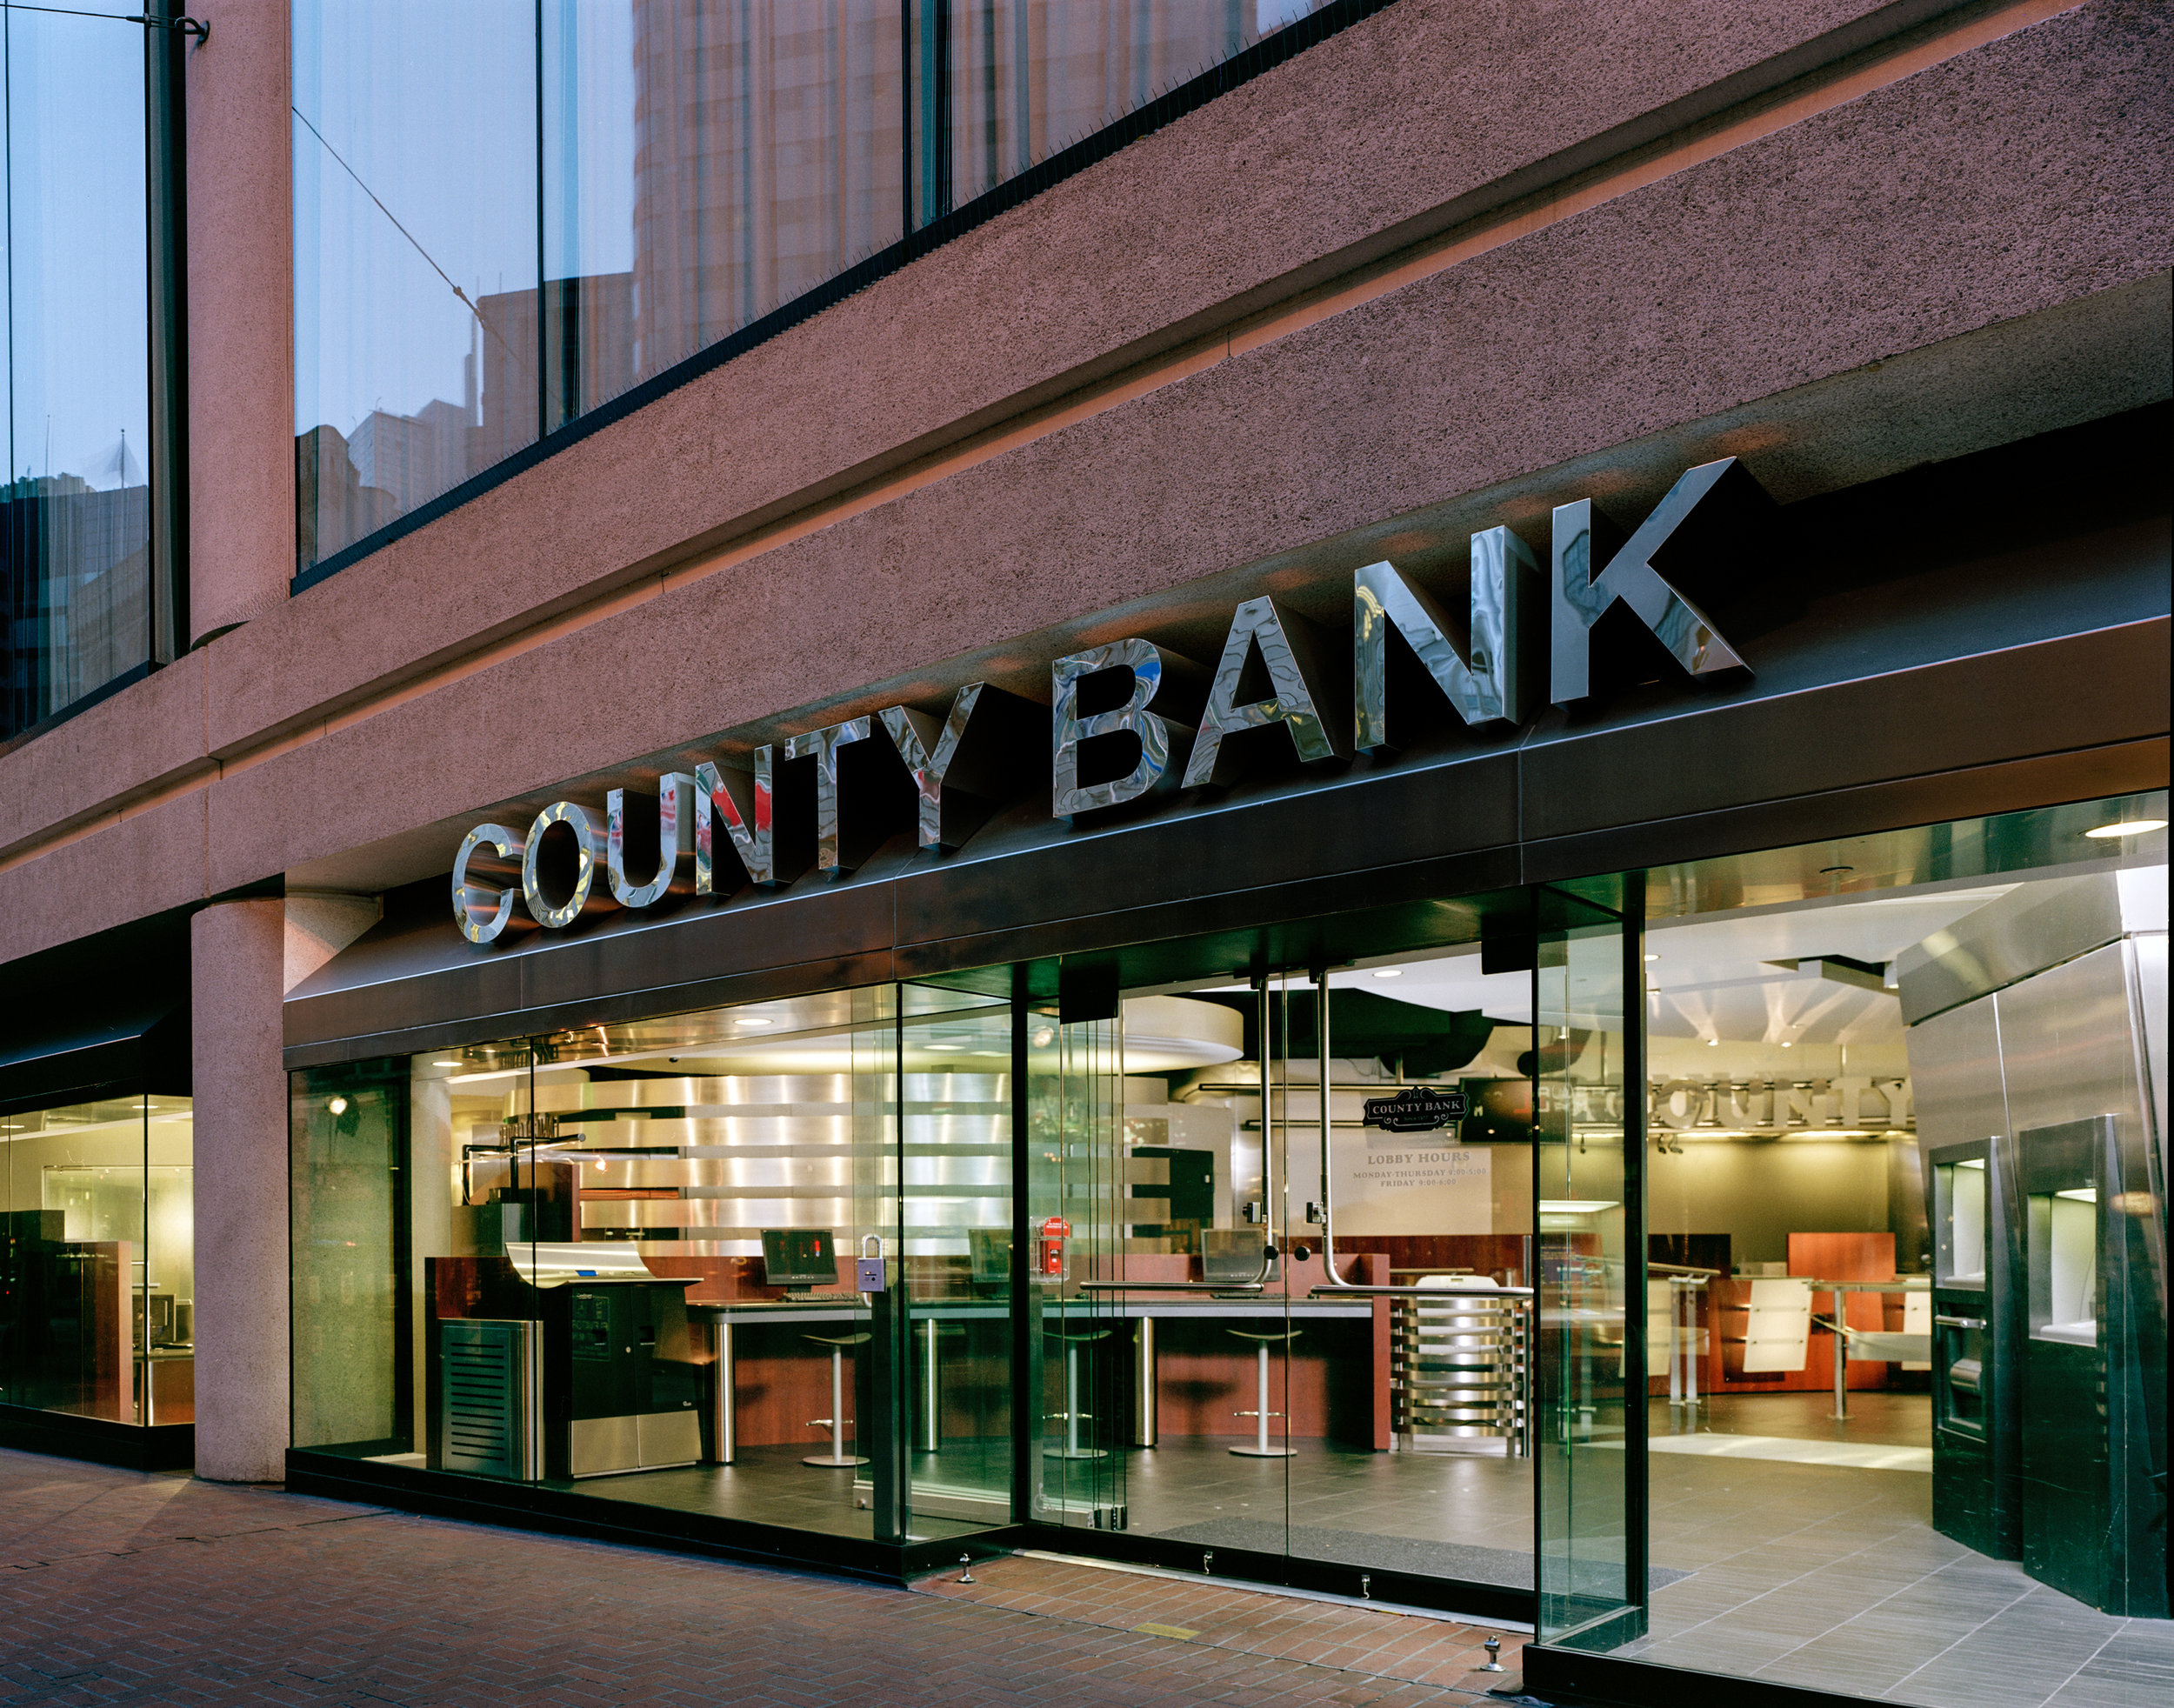 S.F. Bank: Photo -- Market Street entrance